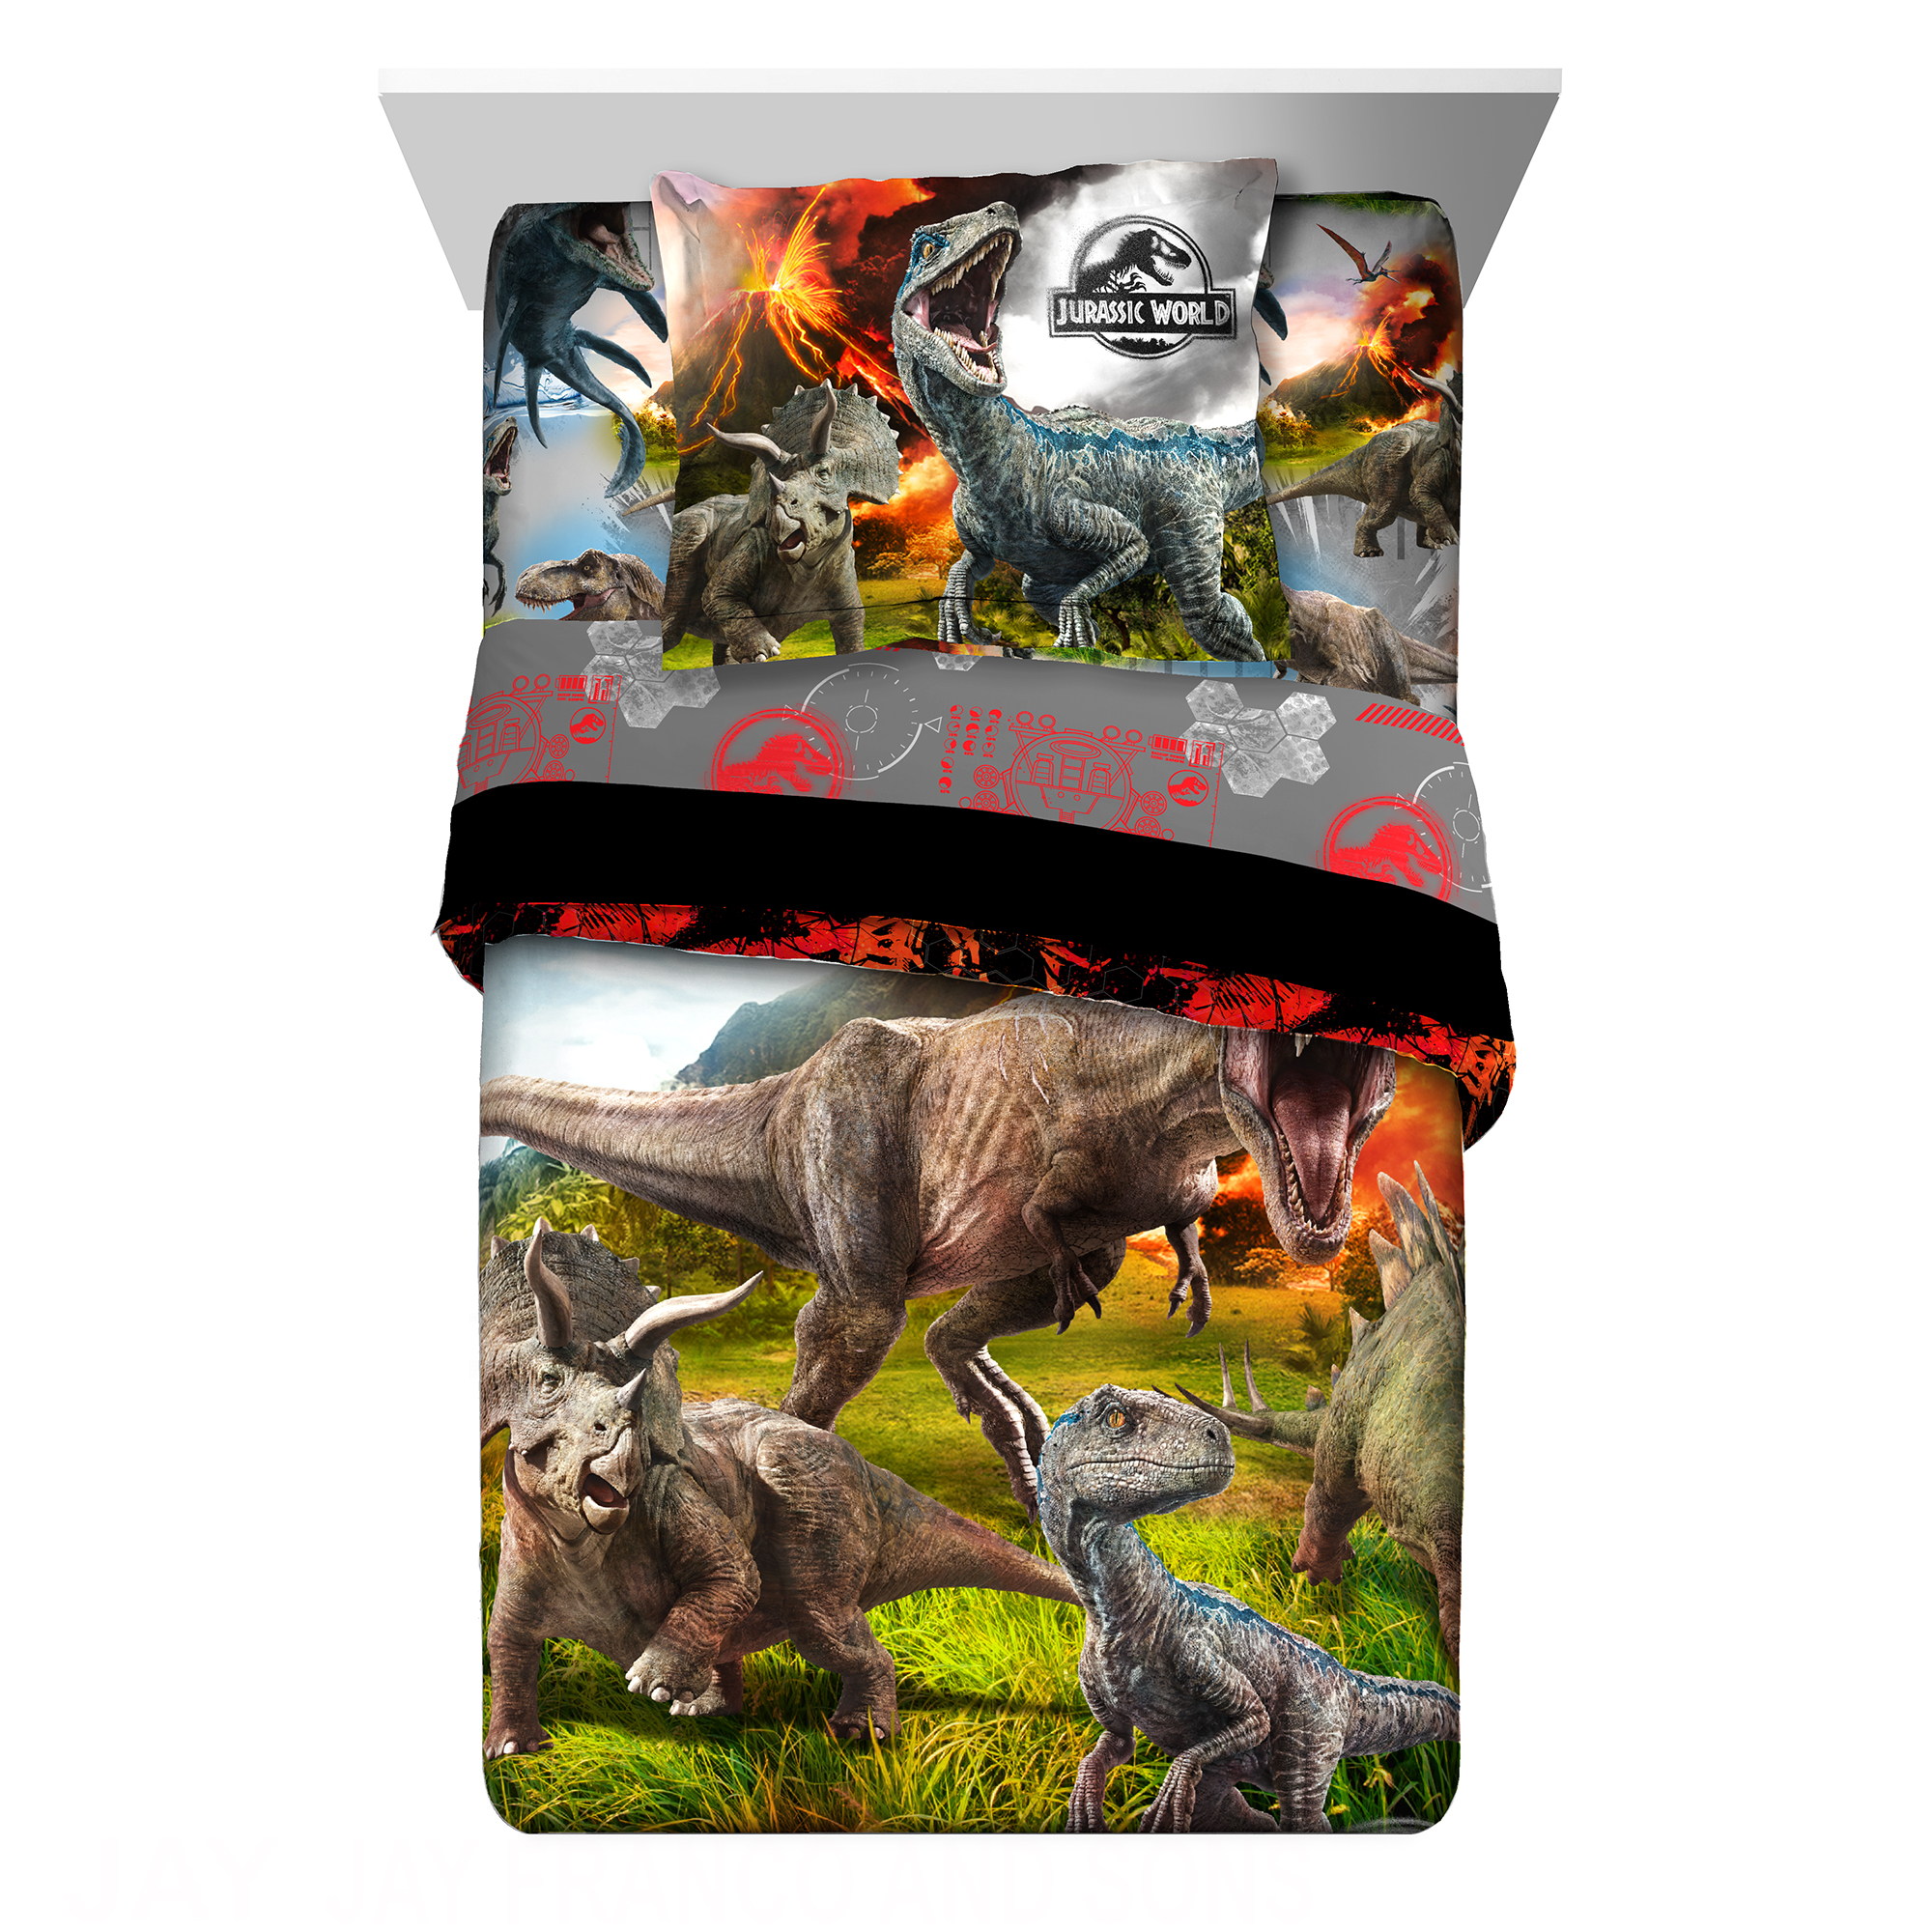 Universal Jurassic World 2 'Eruption' Kids Bedding Twin or Full Comforter with Sham, 2 Piece